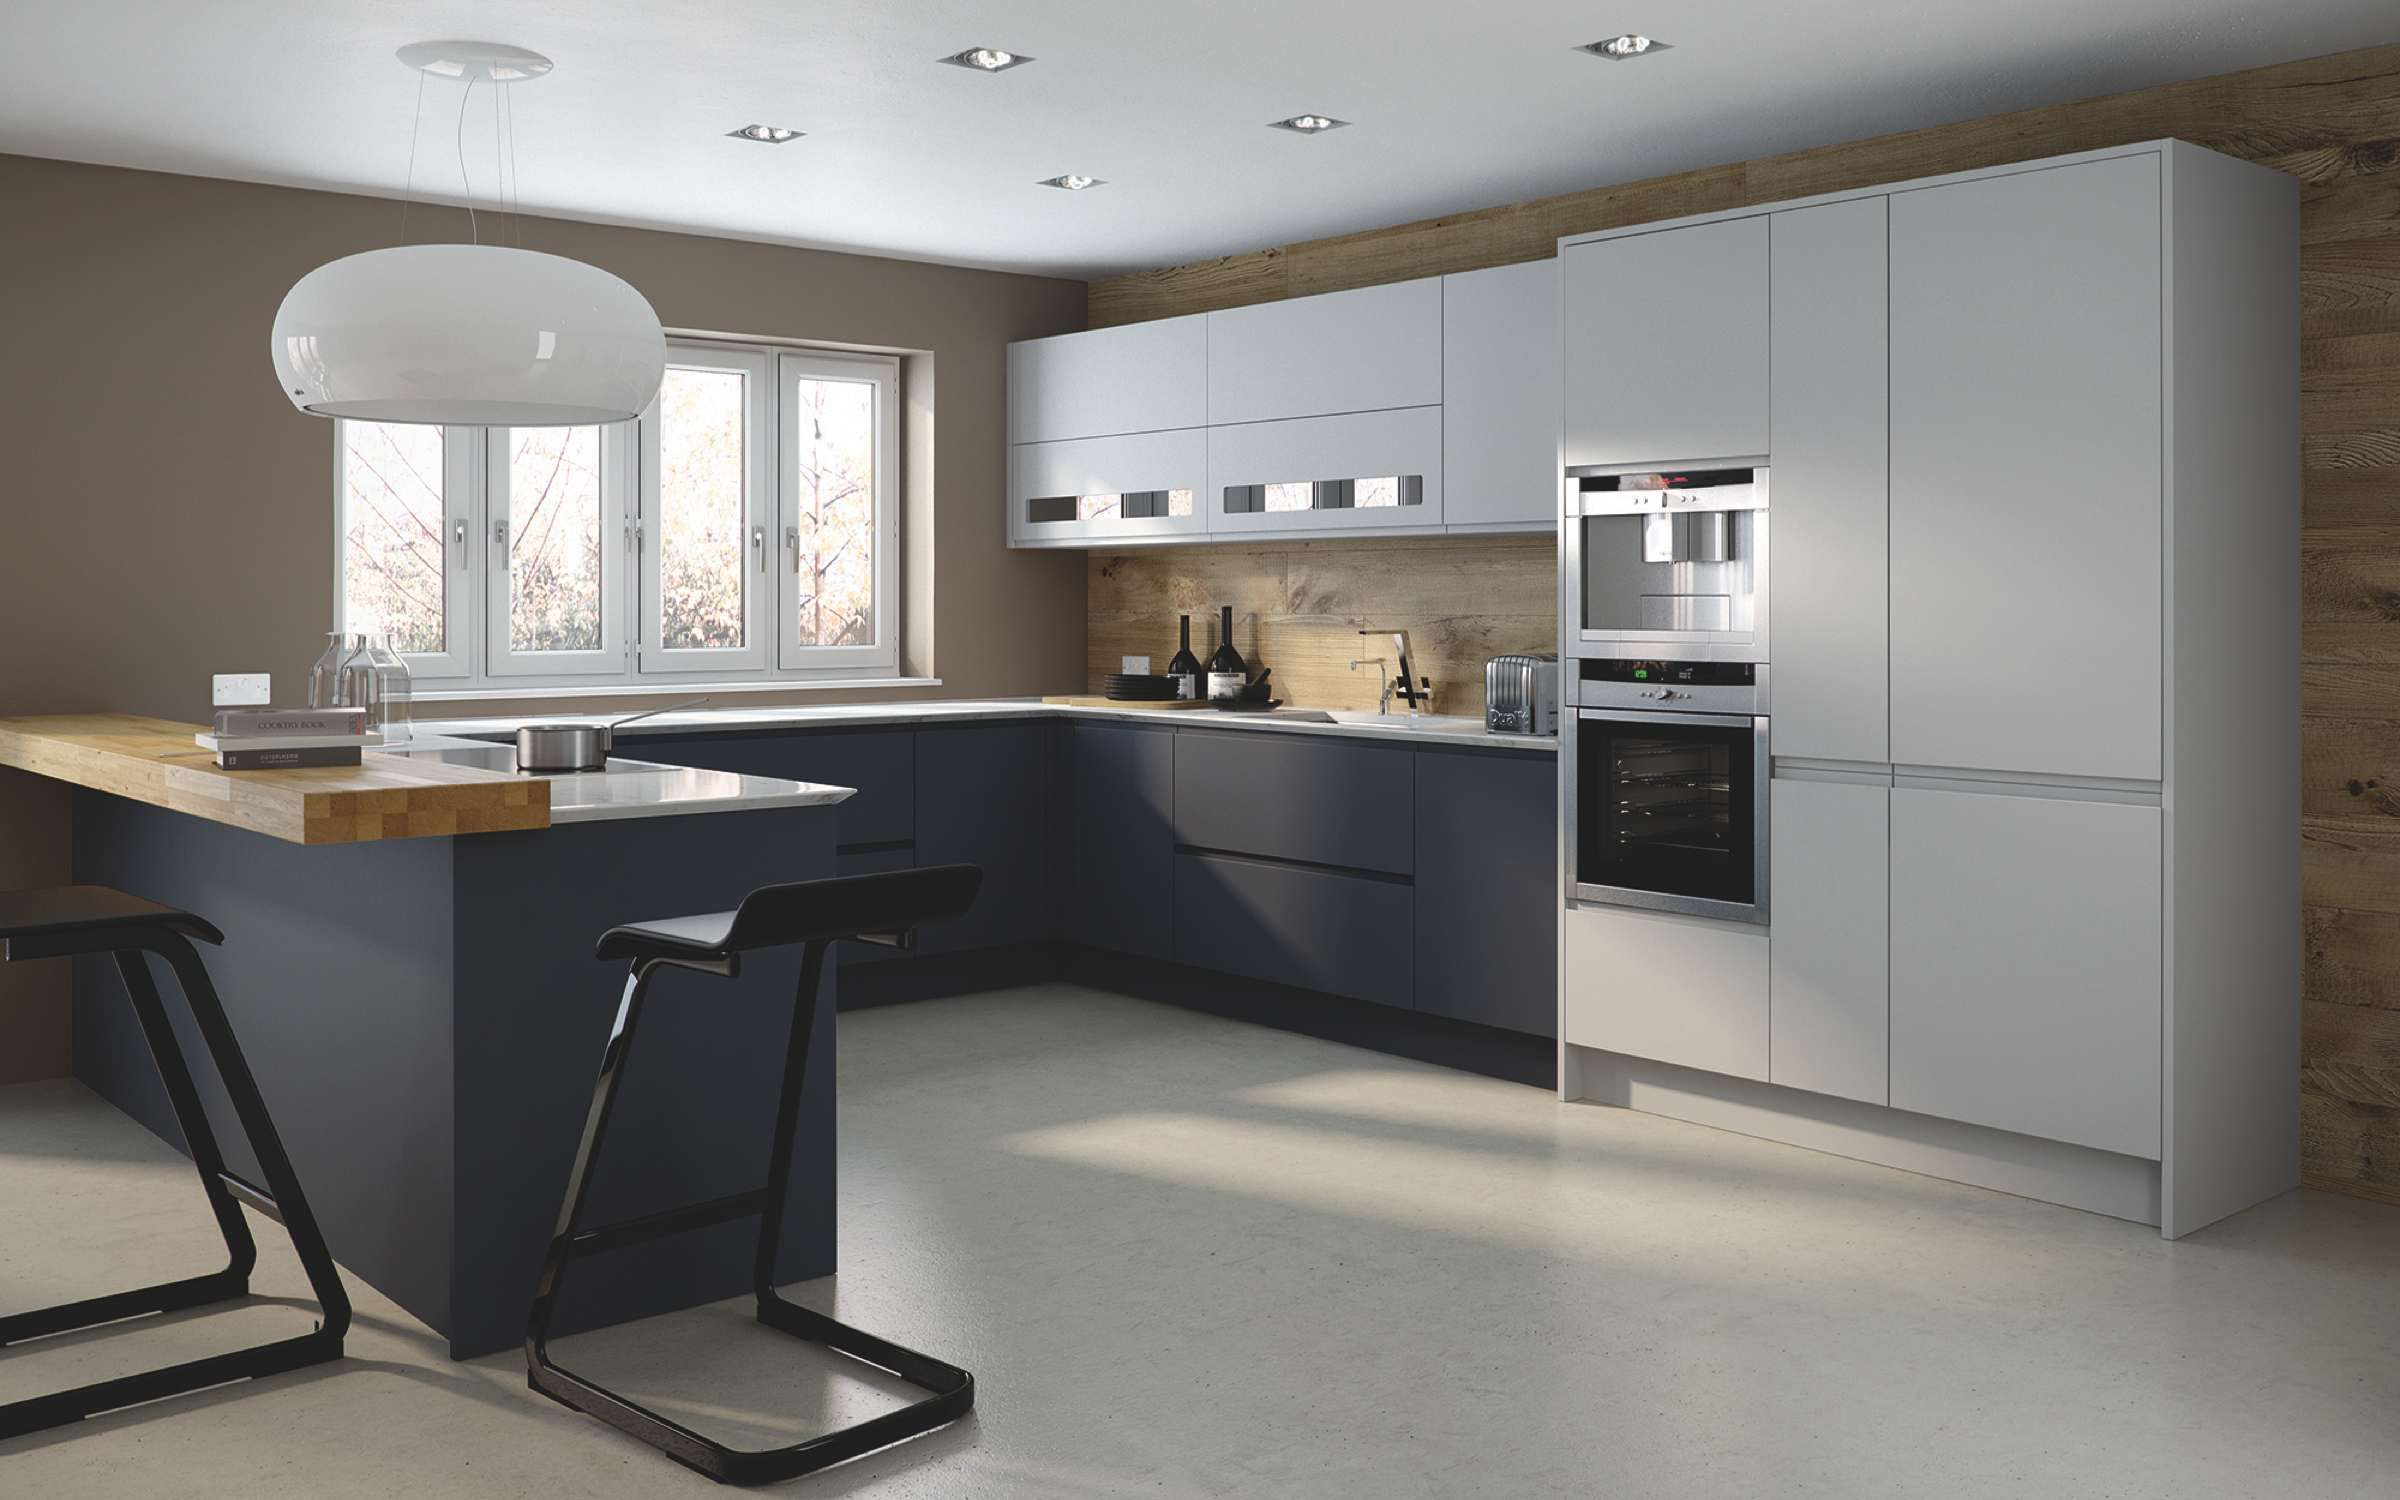 Home - Kitchens Ltd